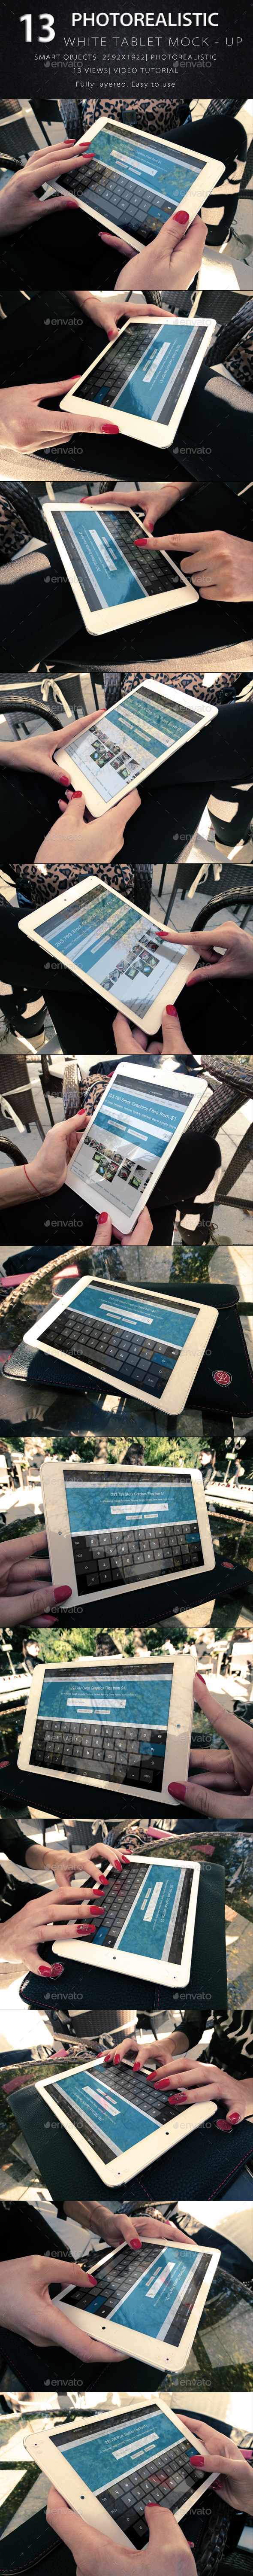 GraphicRiver Photorealistic Tablet With Female Hands Mock-Up V2 9256656